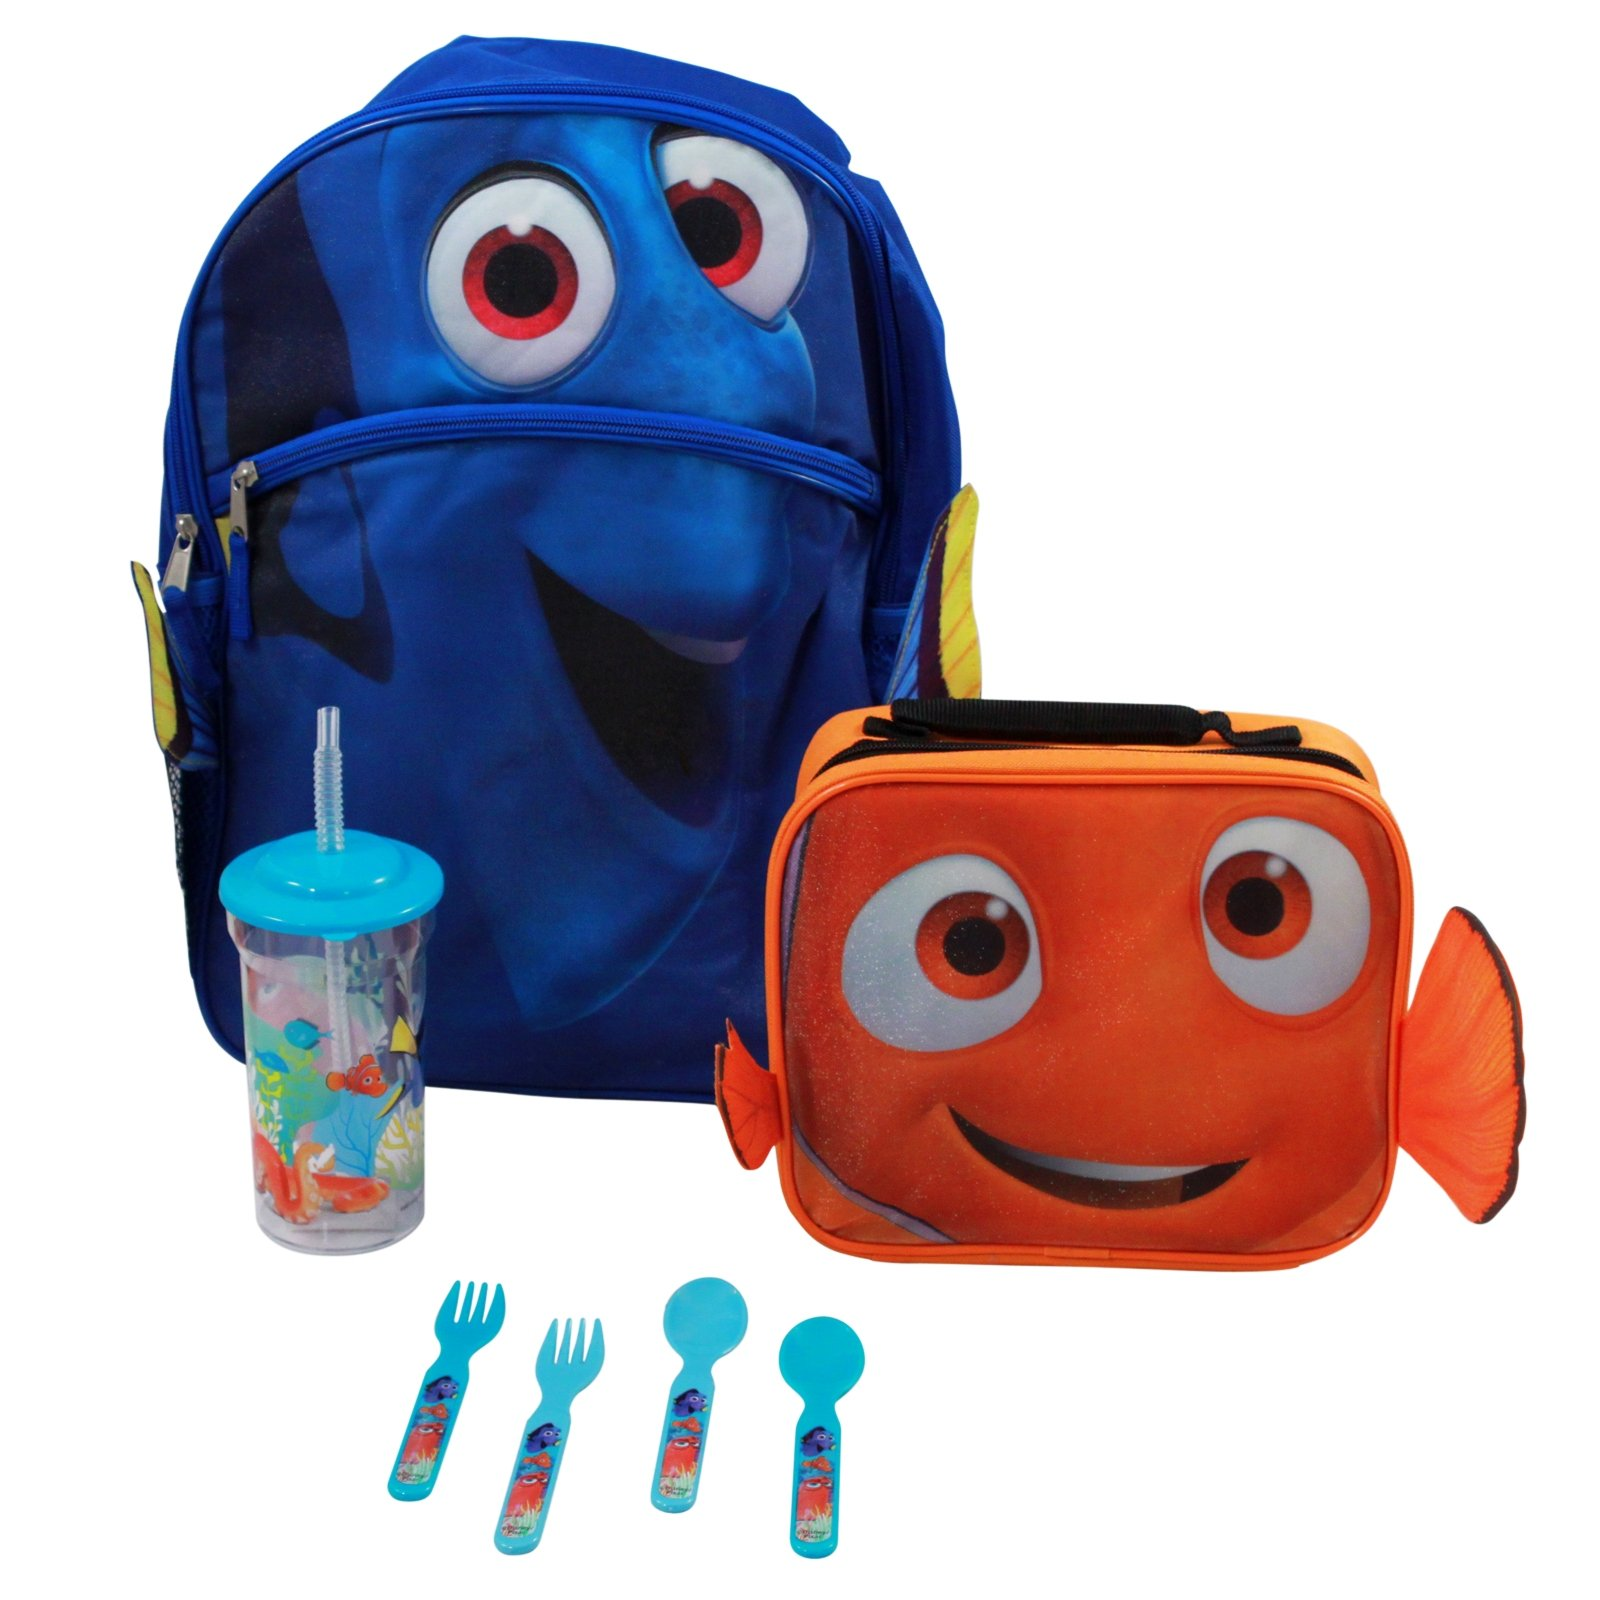 Disney Pixar Finding Dory Lunch Bundle f86e7b46aca2a